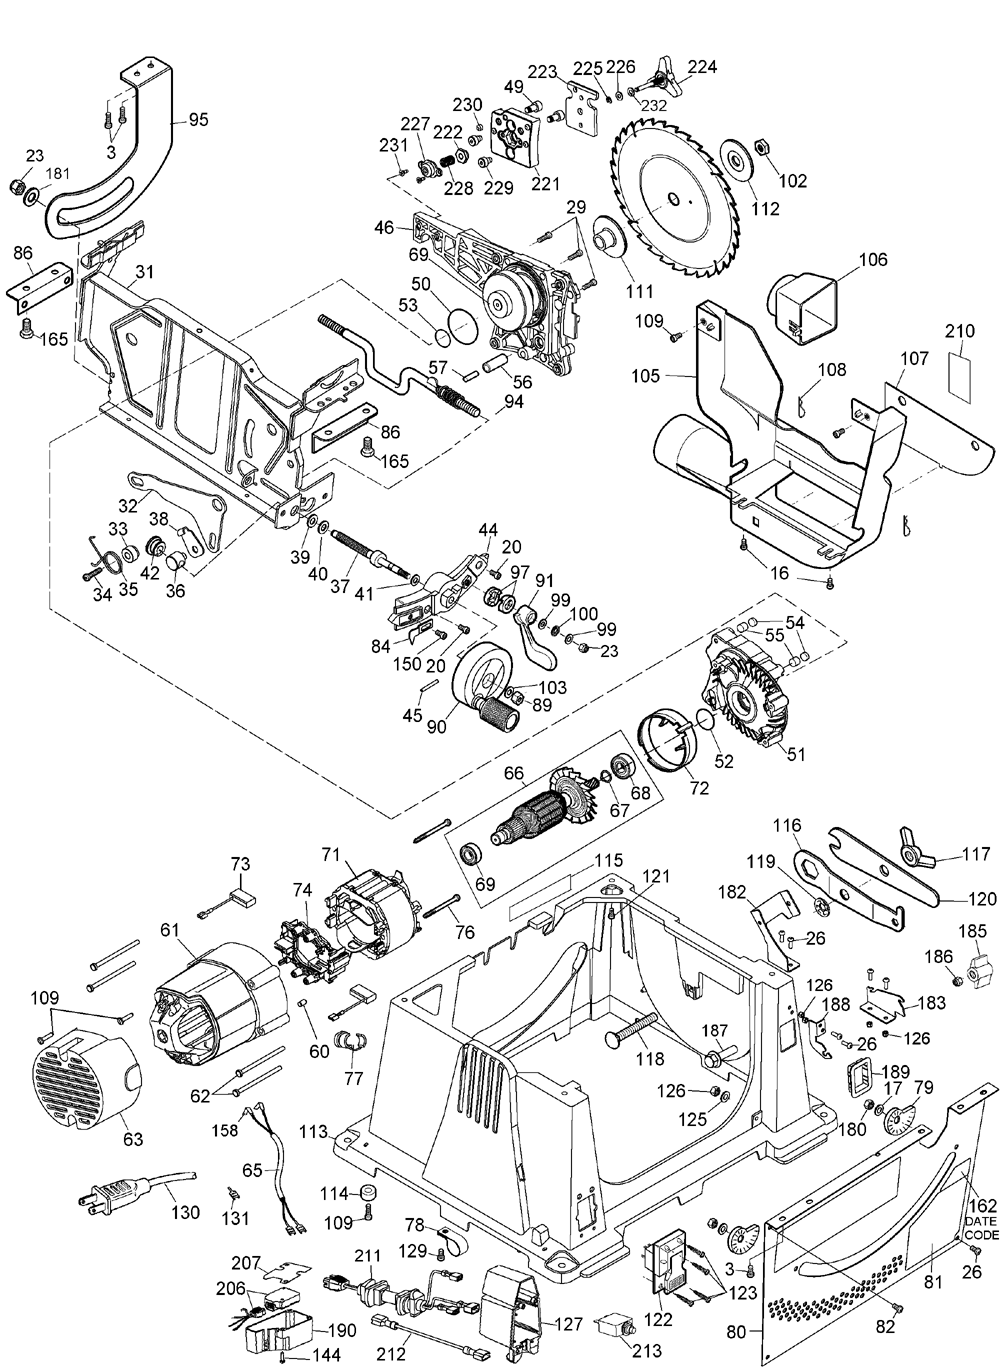 DW744XRS - Table Saw Parts schematic